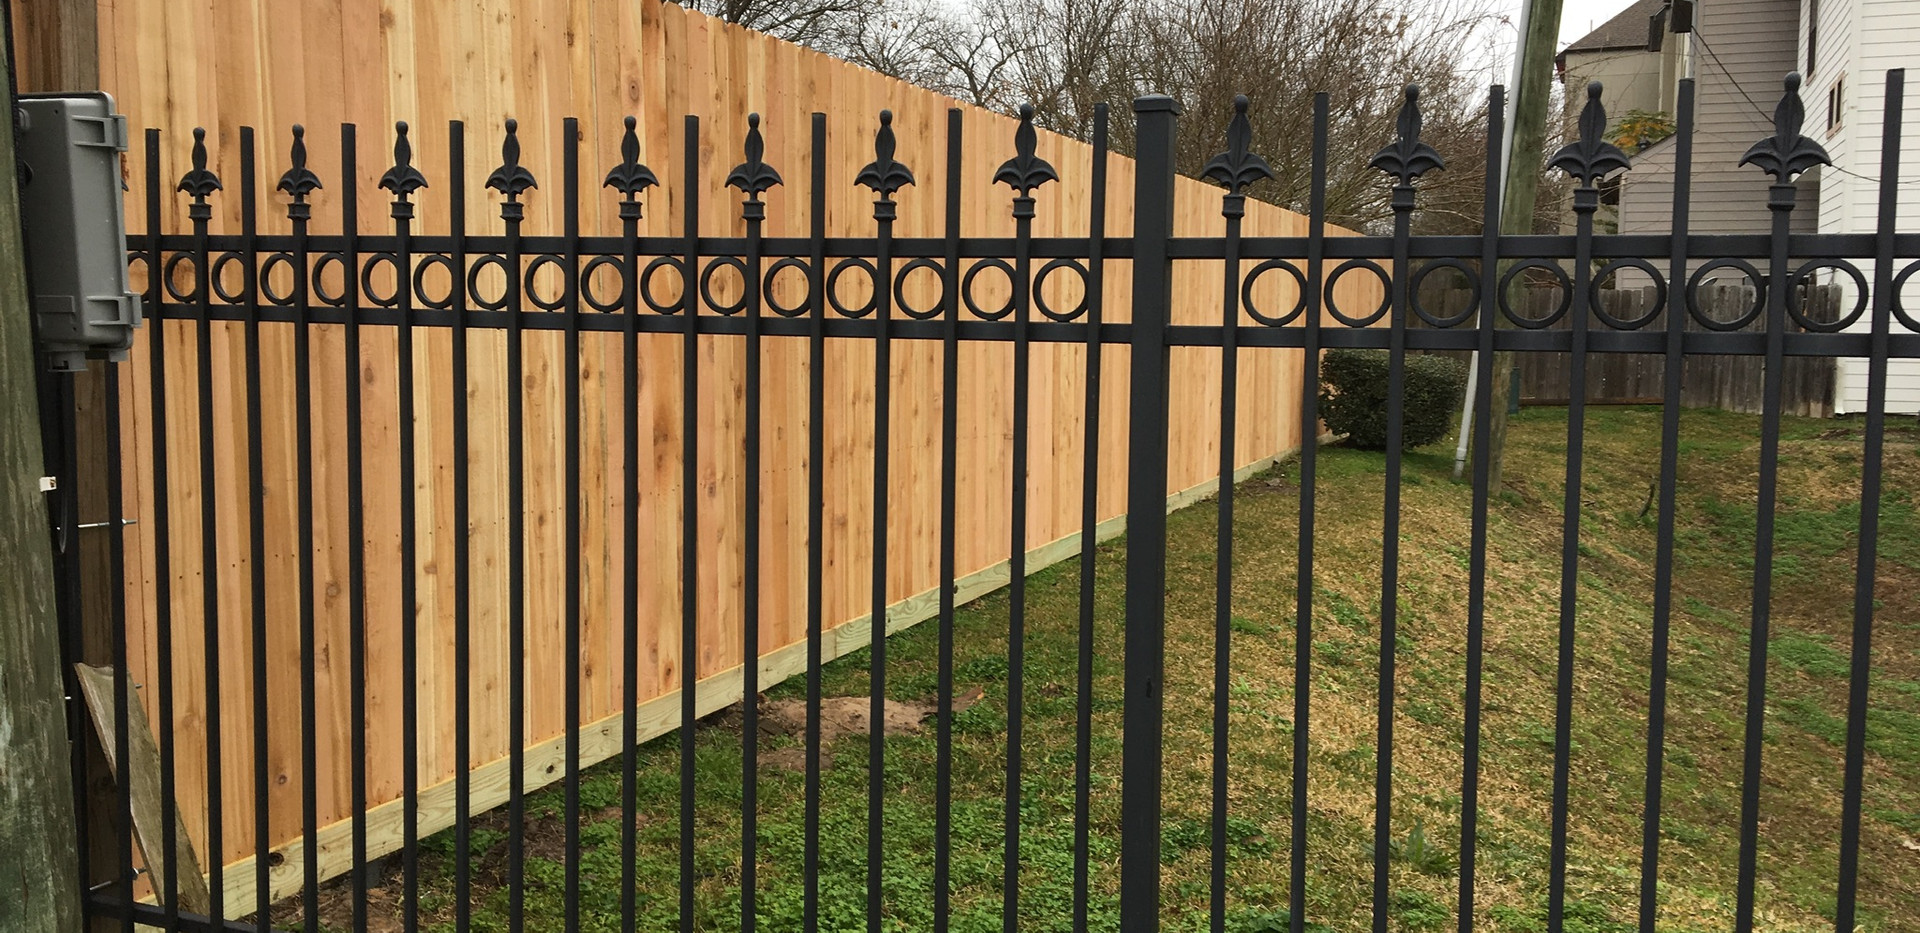 Wrought Iron Fence.jpg